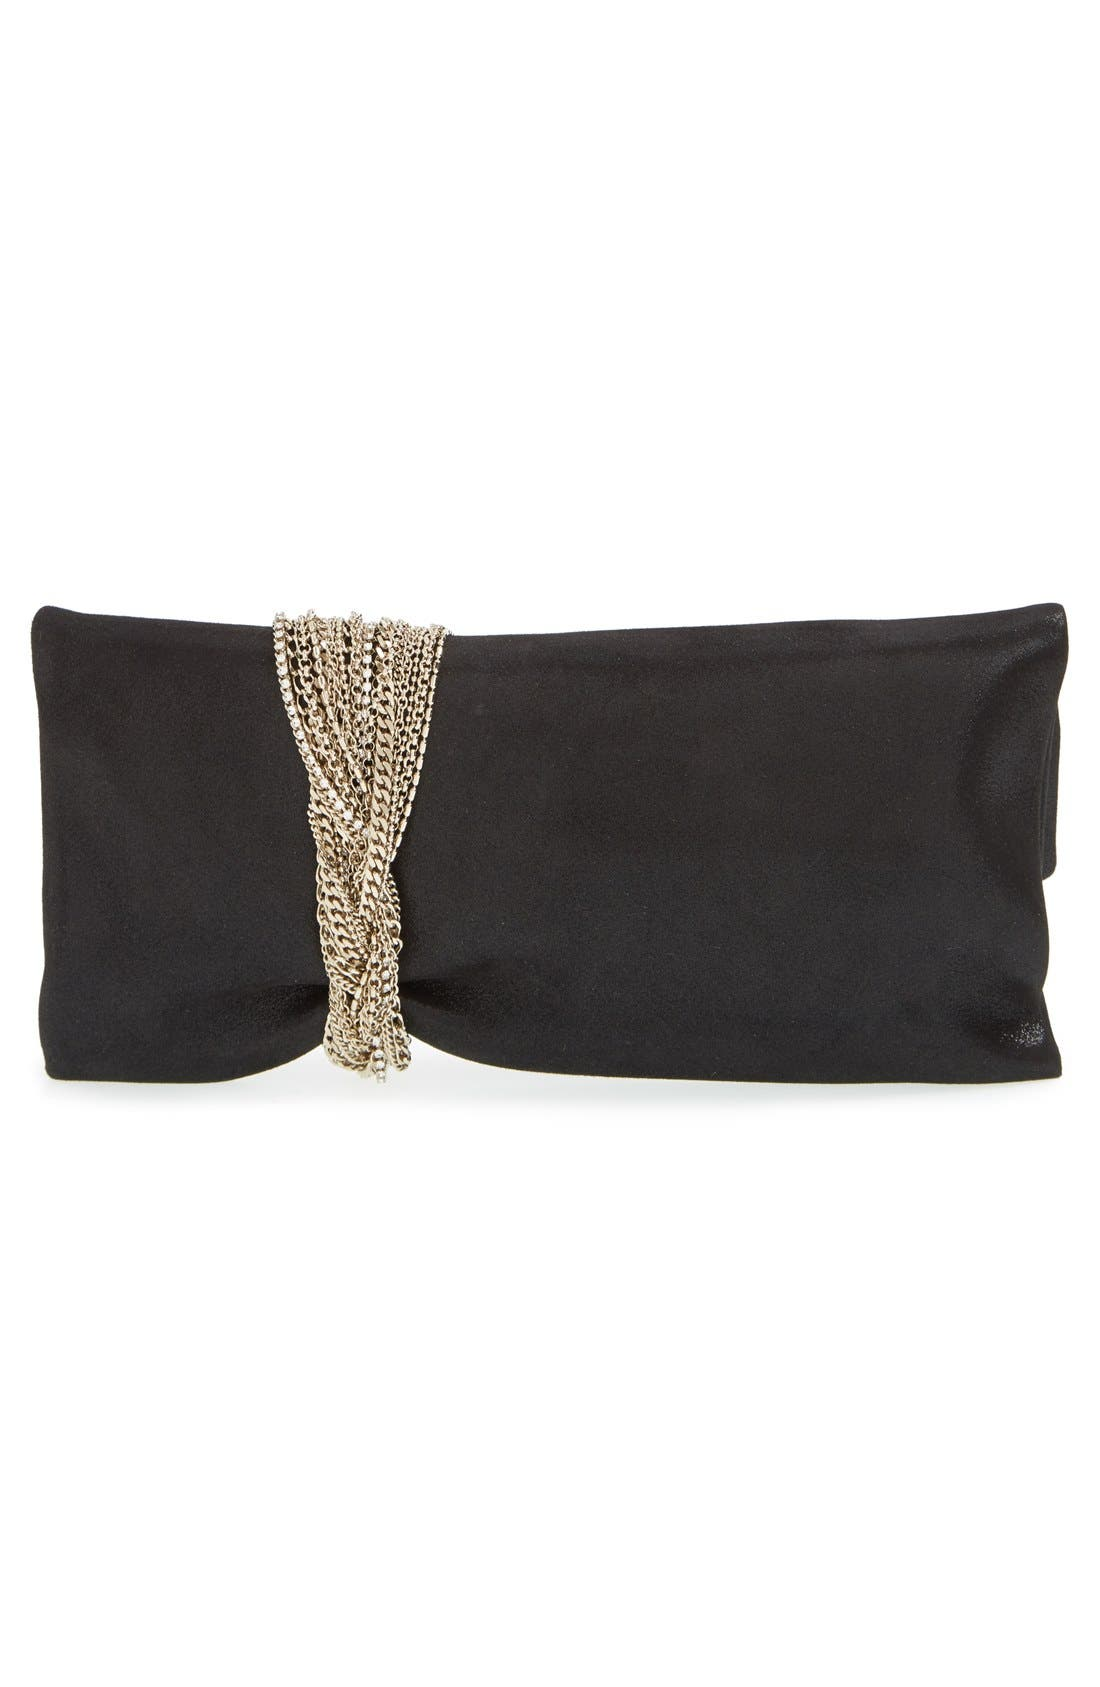 Alternate Image 3  - Jimmy Choo 'Chandra' Leather Clutch